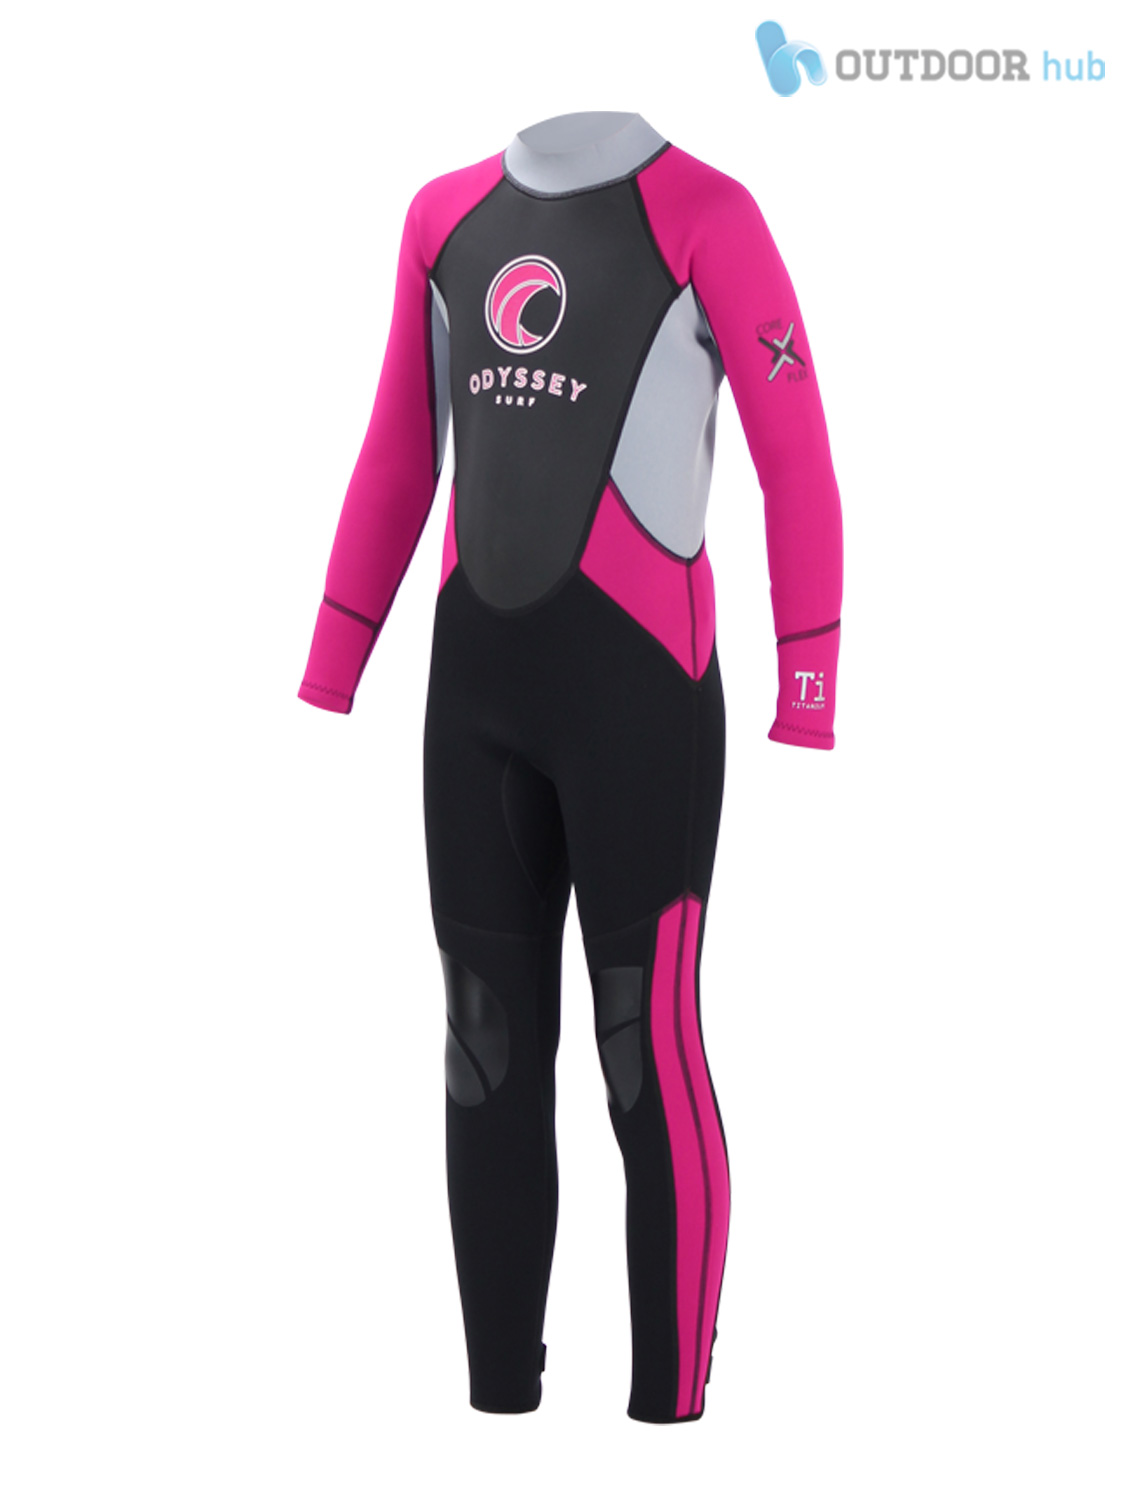 Odyssey-3mm-Childs-Kids-Junior-Teenage-Full-Steamer-Titanium-Wetsuit-XXS-XXL